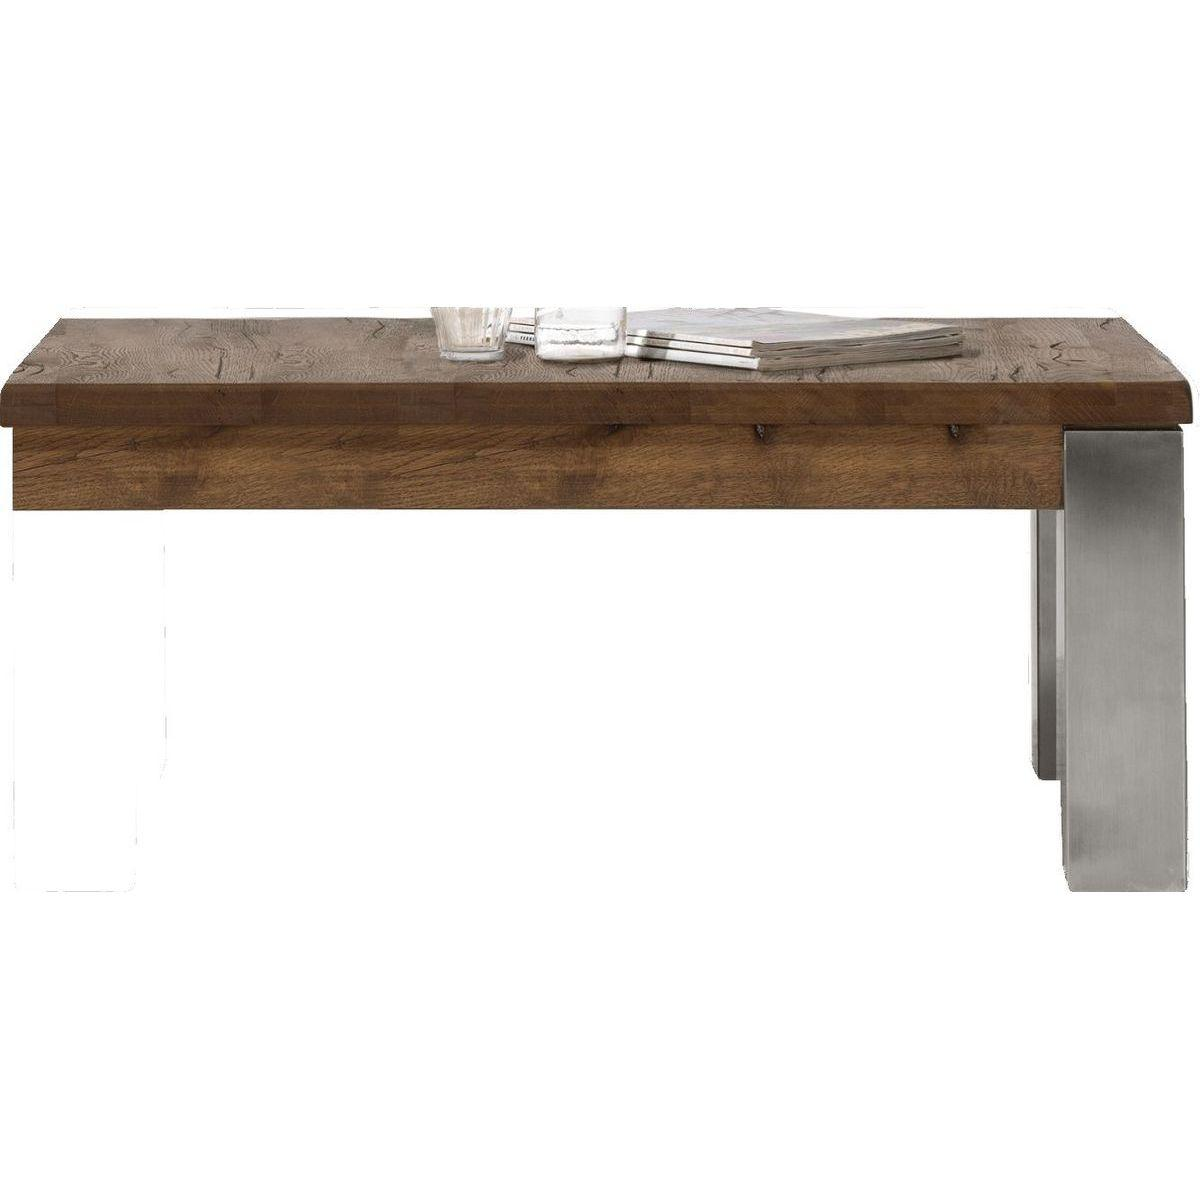 MASTERS by H&H Table basse 90x120cm